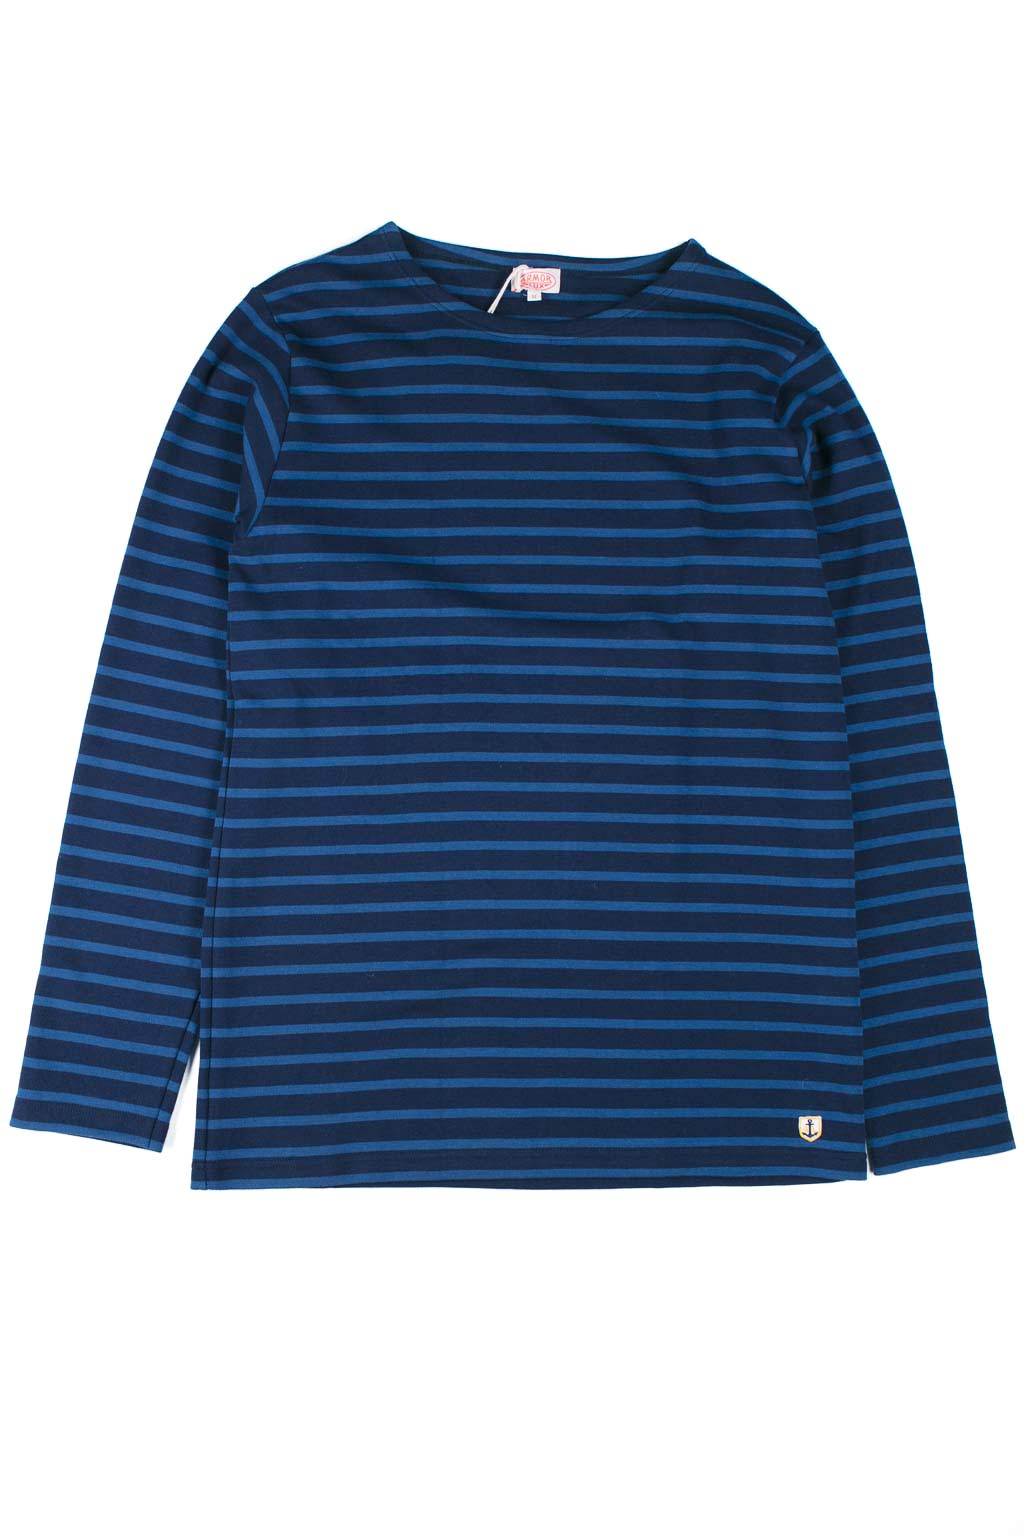 Heritage Breton Shirt - Seal/ Royal